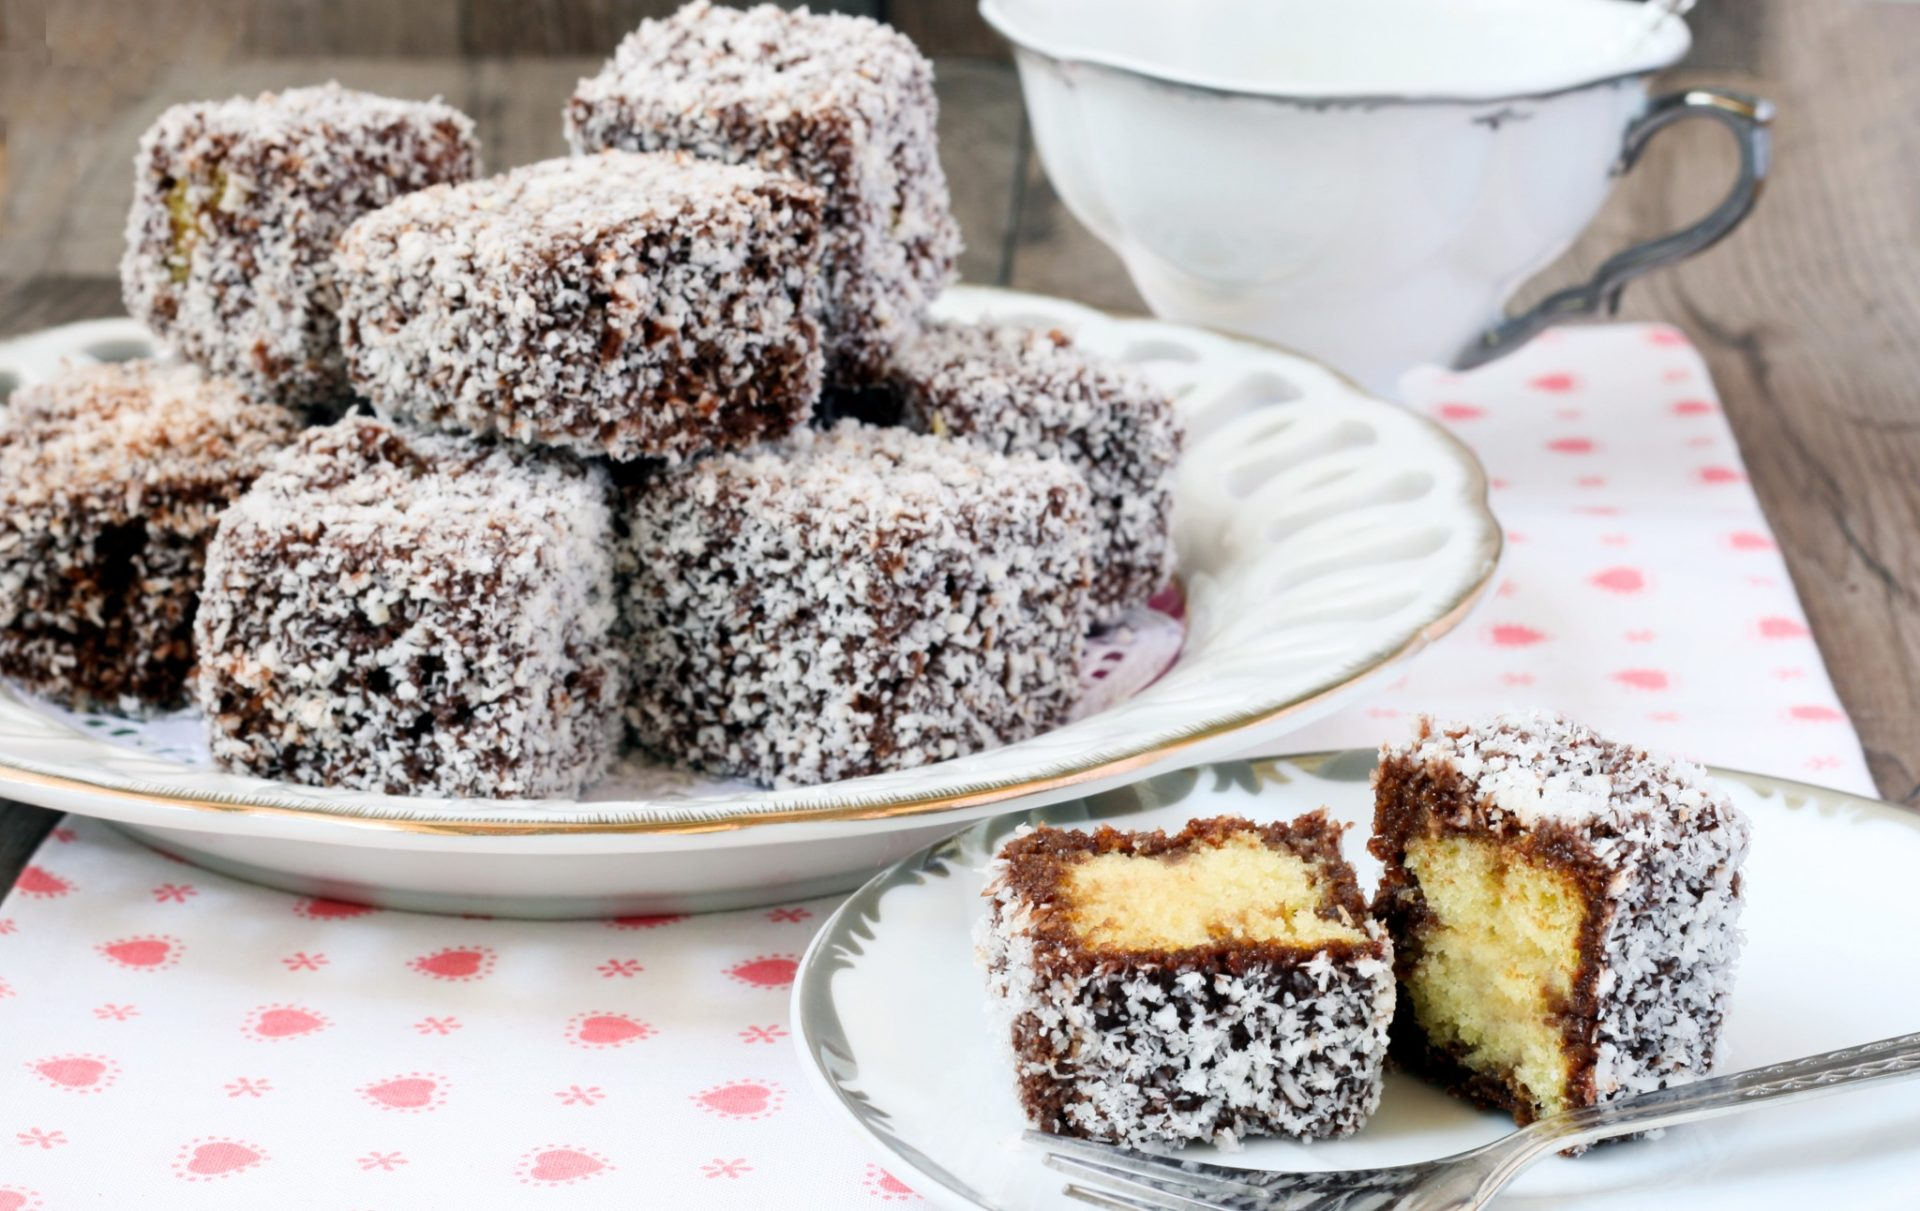 Sweet Australia: What Is The Lamington? - Epicure ...